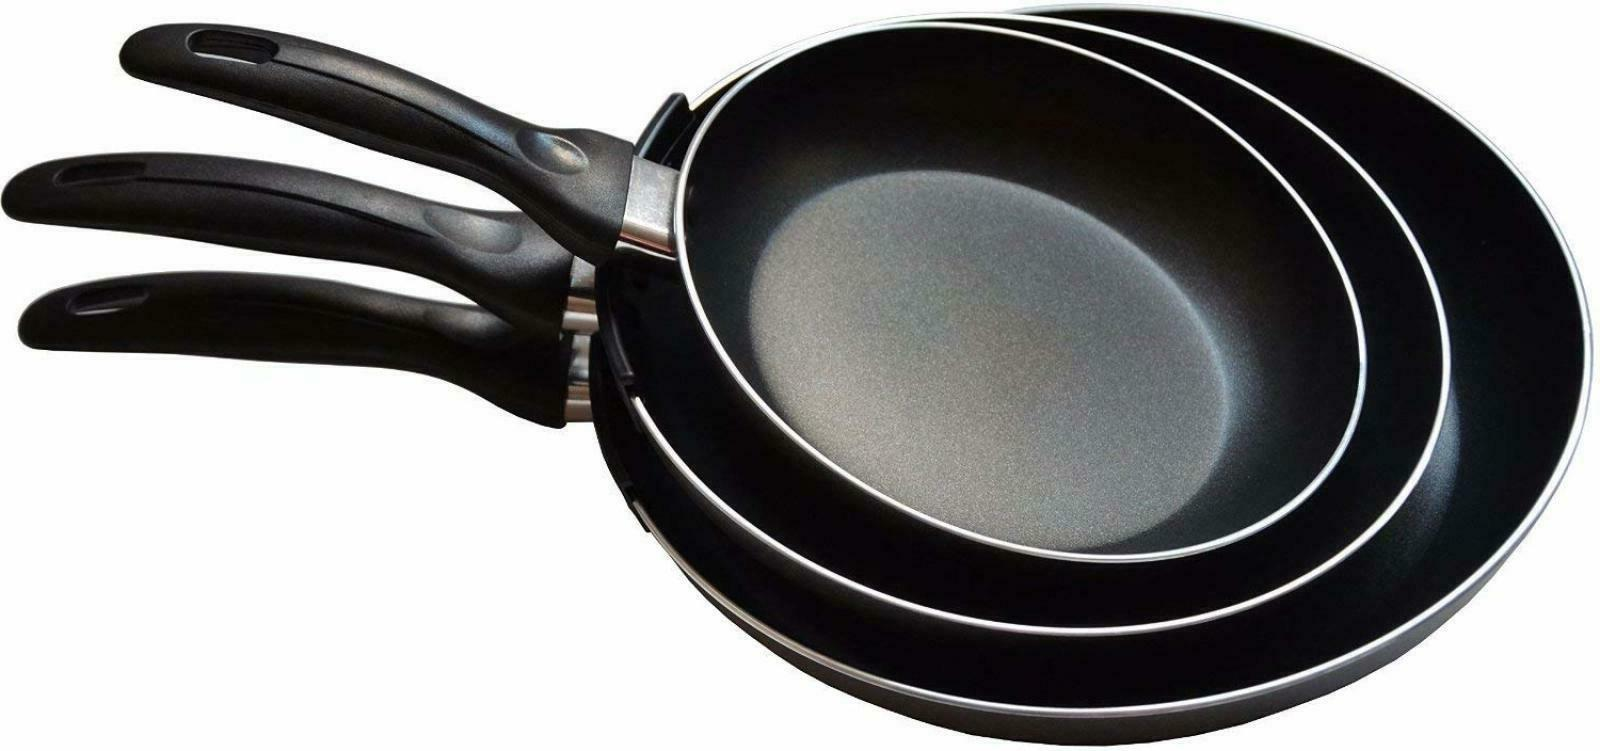 Utopia Aluminum Frying Pan 8 Inches, 1